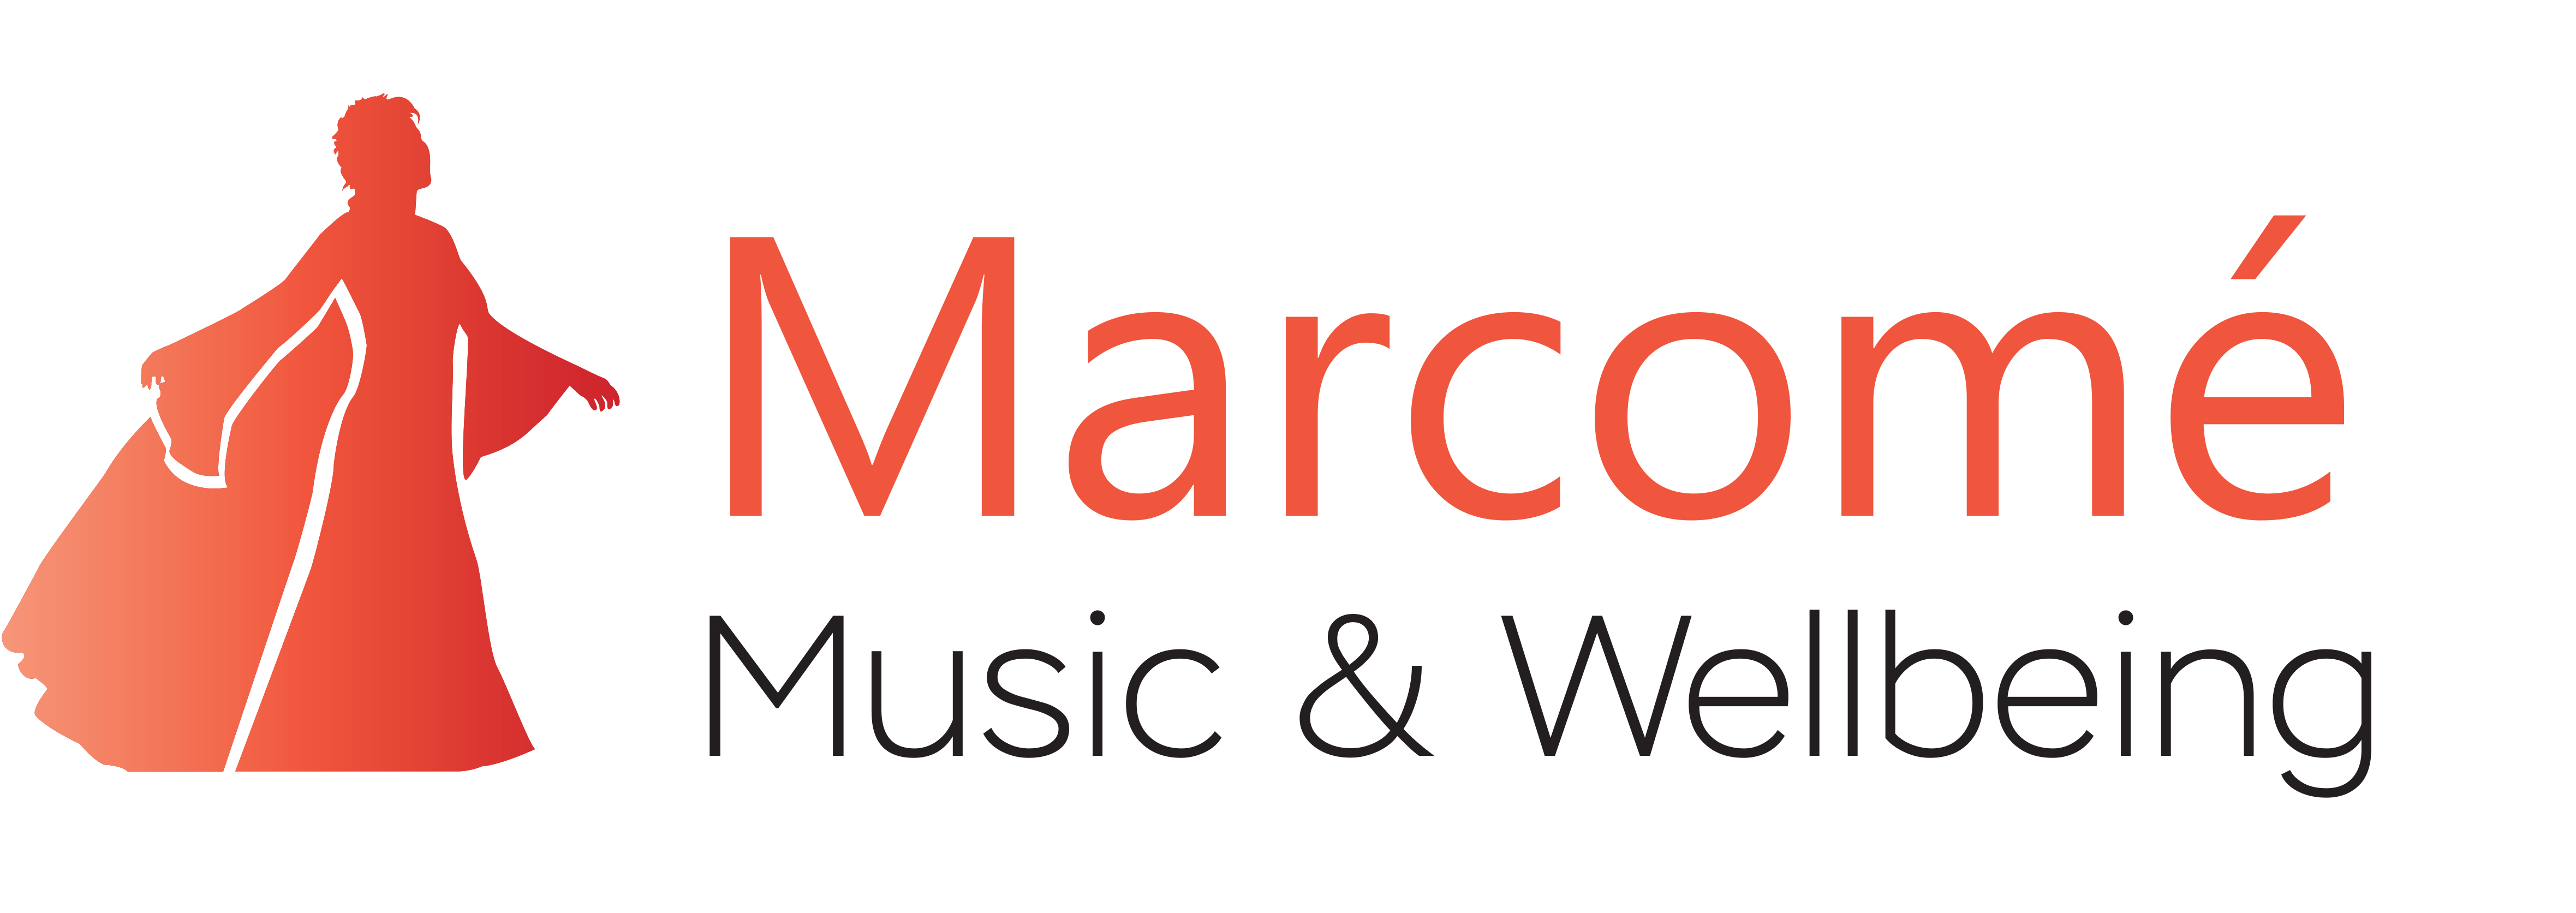 New age music artist Marcomé